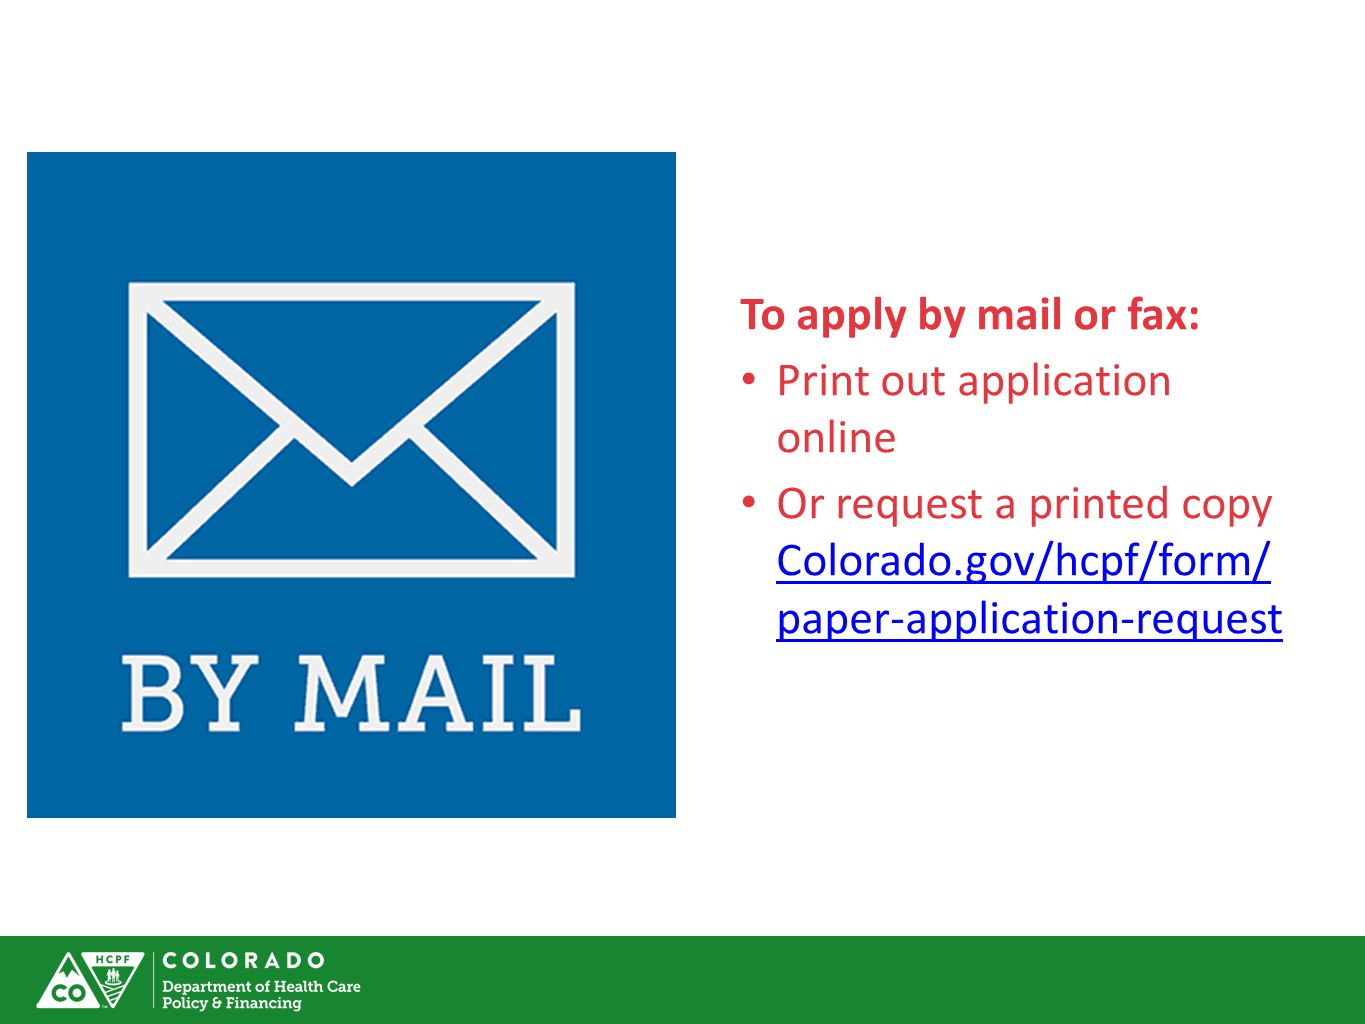 To Apply By Mail Or Fax: Print Out Application Online